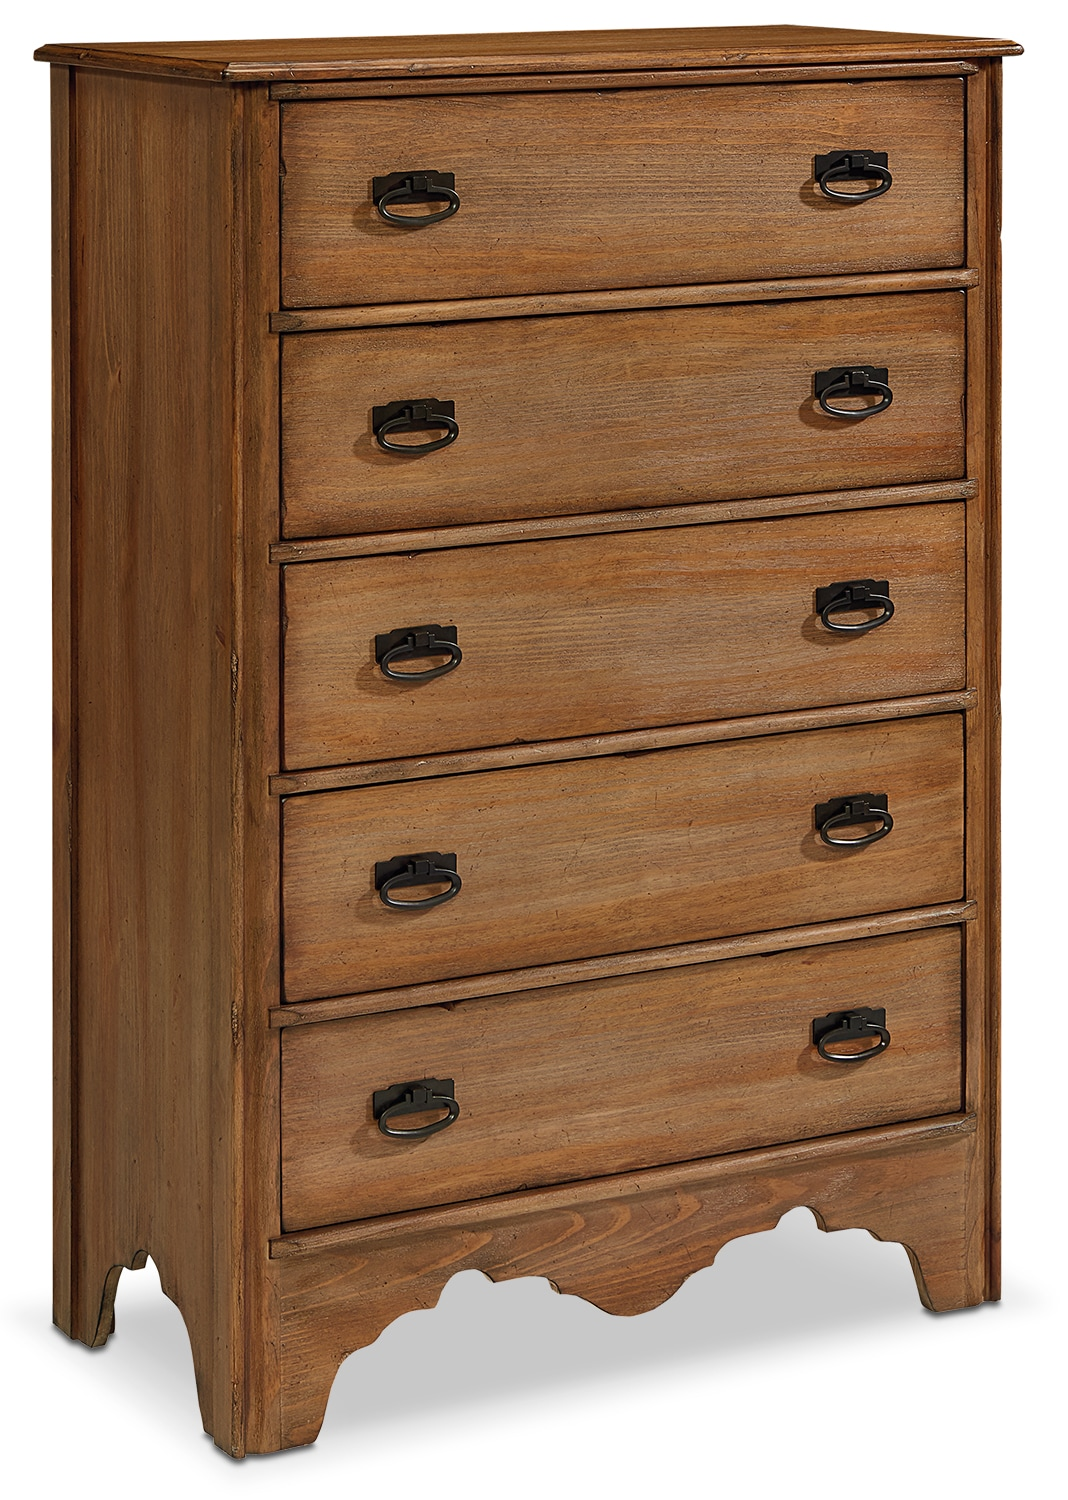 Bedroom Furniture - Mantel Chest